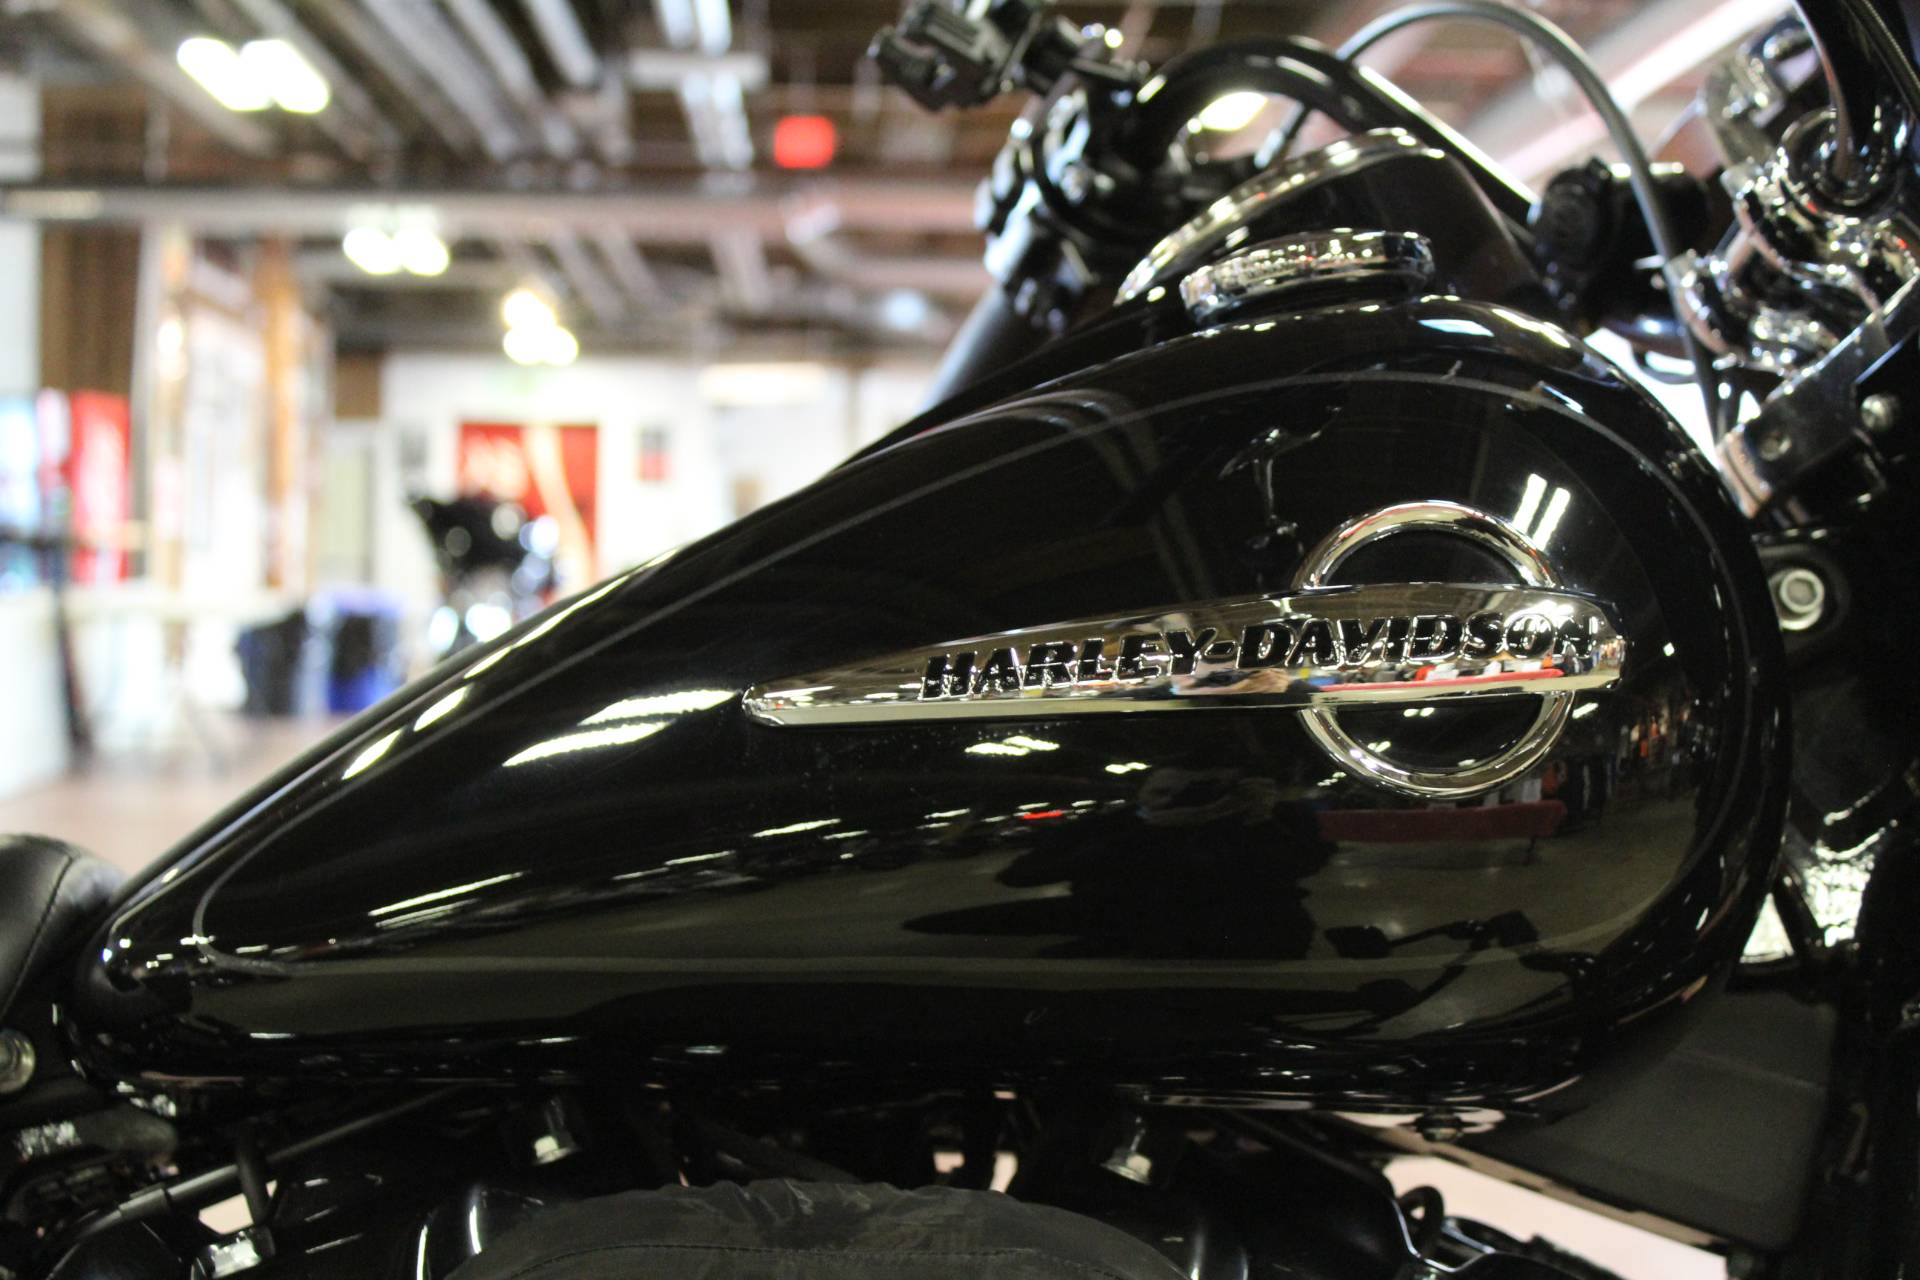 2019 Harley-Davidson Heritage Classic 114 in New London, Connecticut - Photo 9